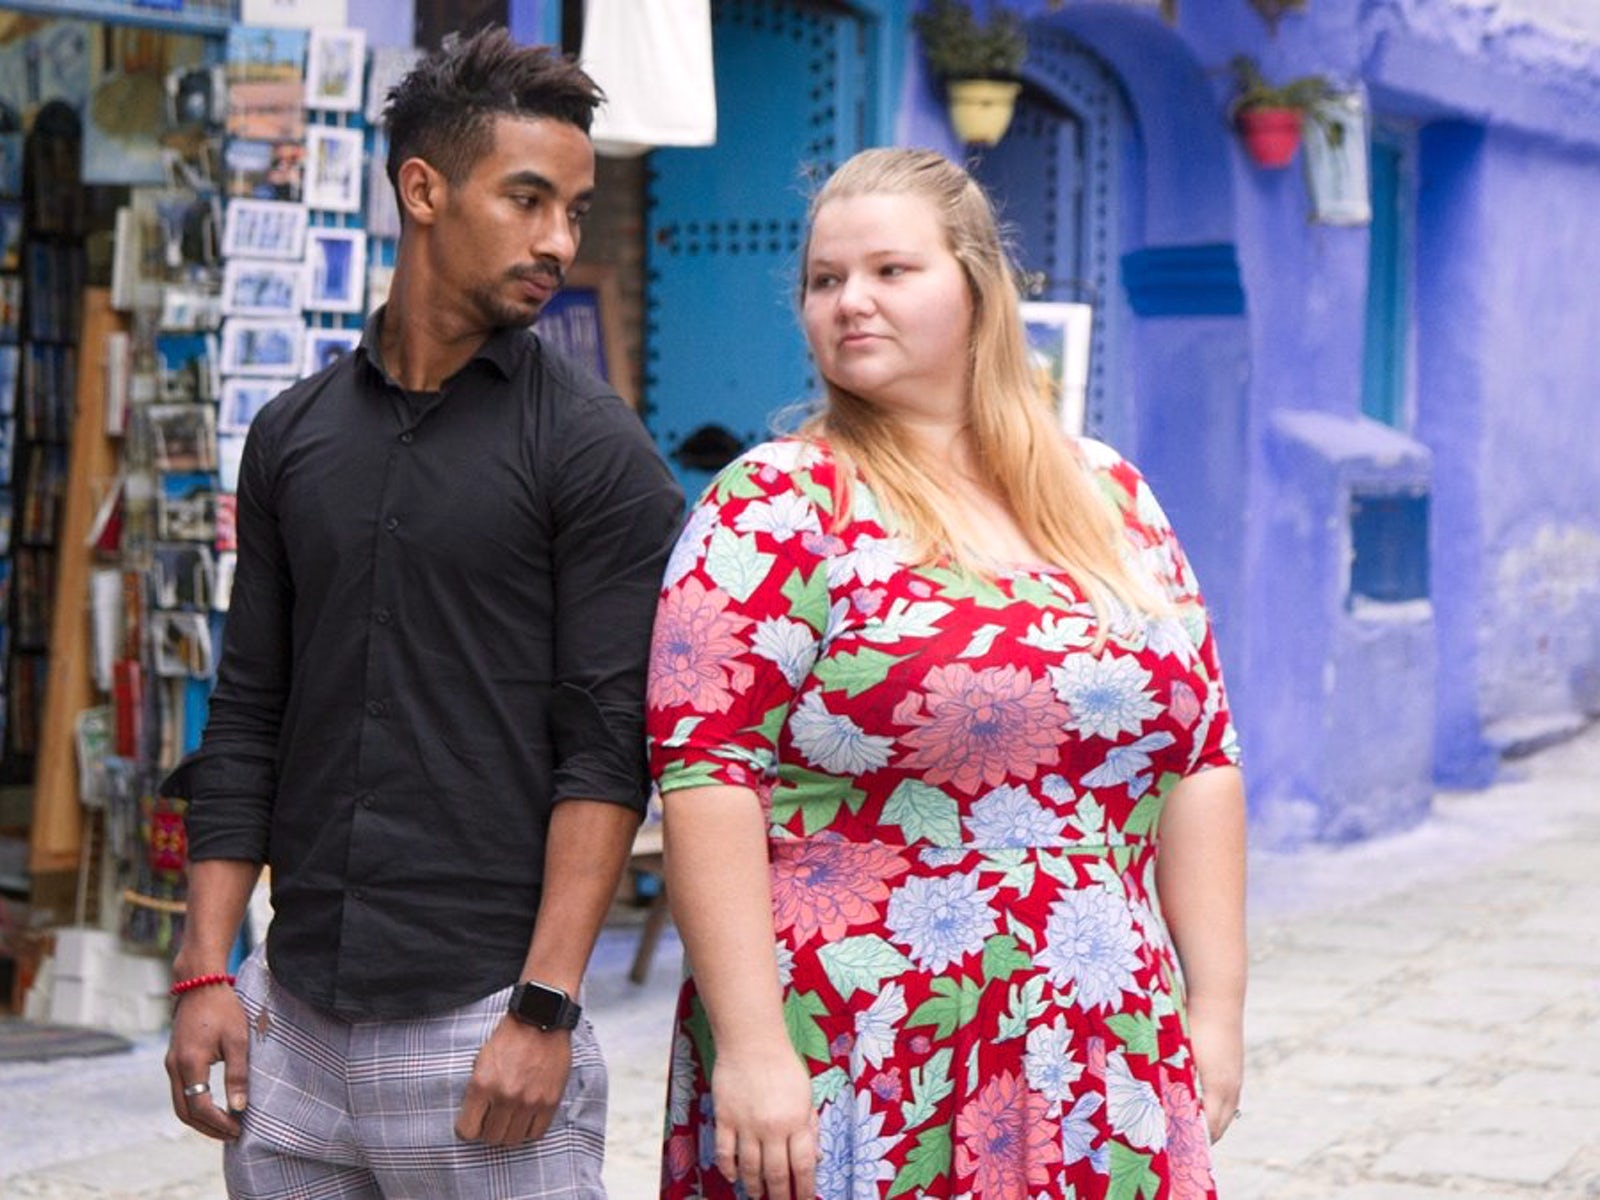 90 Day Fiance' star Nicole Nafziger squashes Azan Tefou split rumors